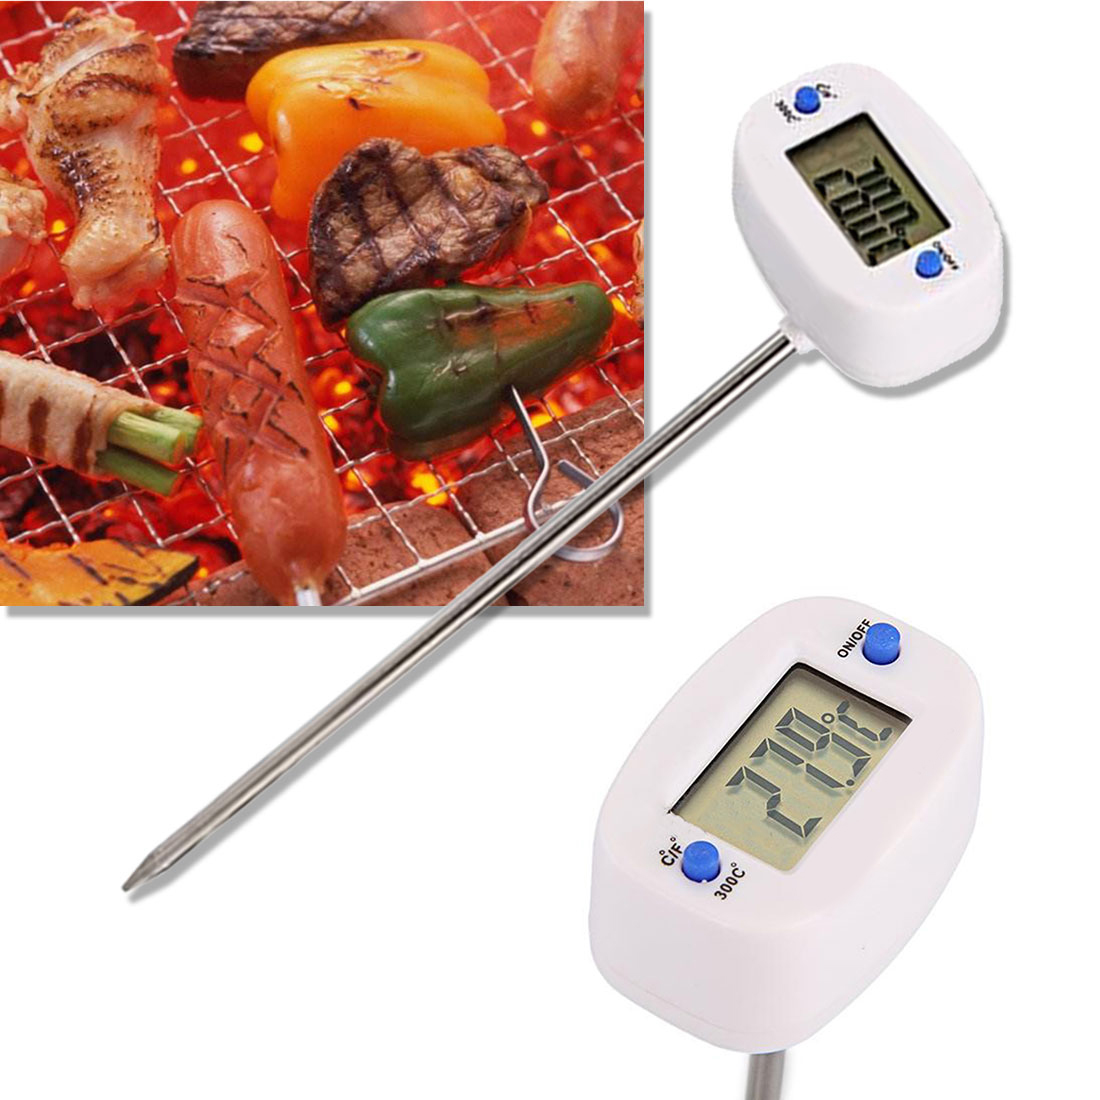 Precision Rotatable Digital Food Thermometer 1pc LCD Screen Digital Display Rotary Probe Kitchen Thermometer Electronic Probe